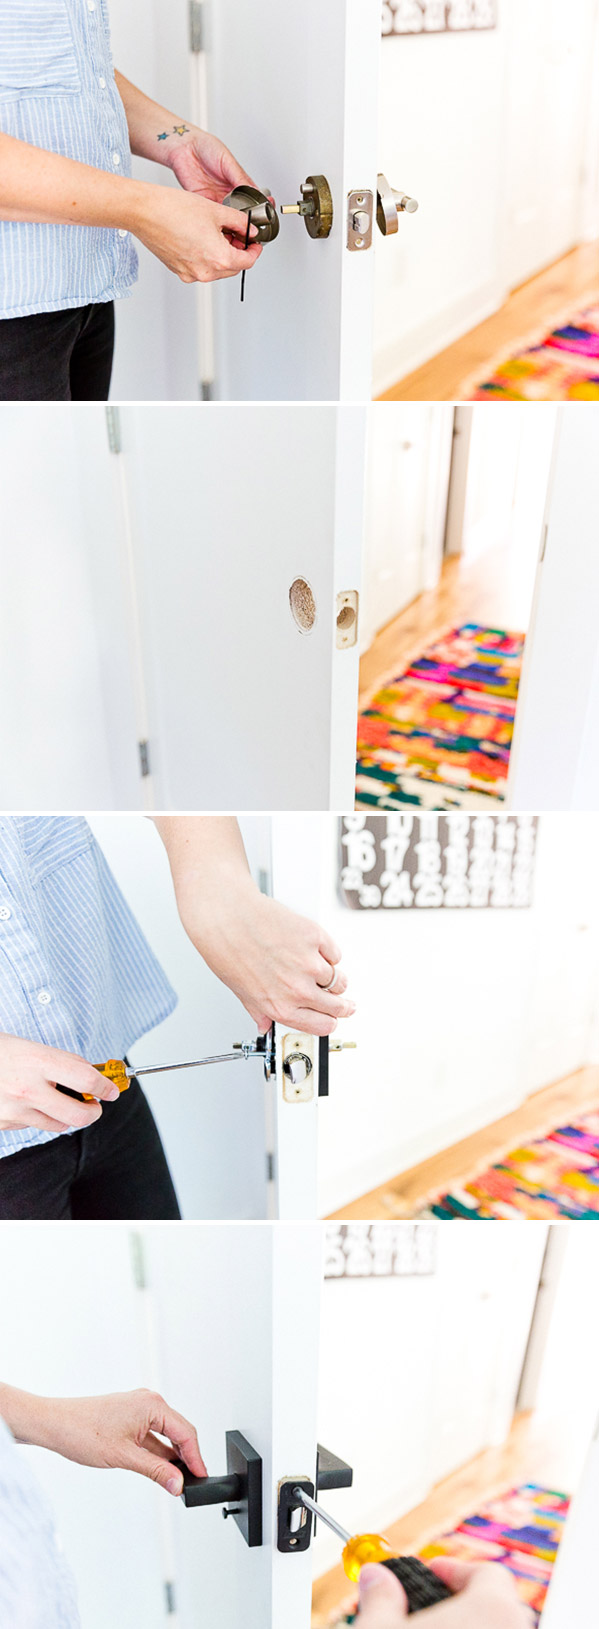 How to install new door hardware in under 15 minutes! Who knew it was this easy. Click through for more! #installdoorhardware #diyroommakeover #doorhardware